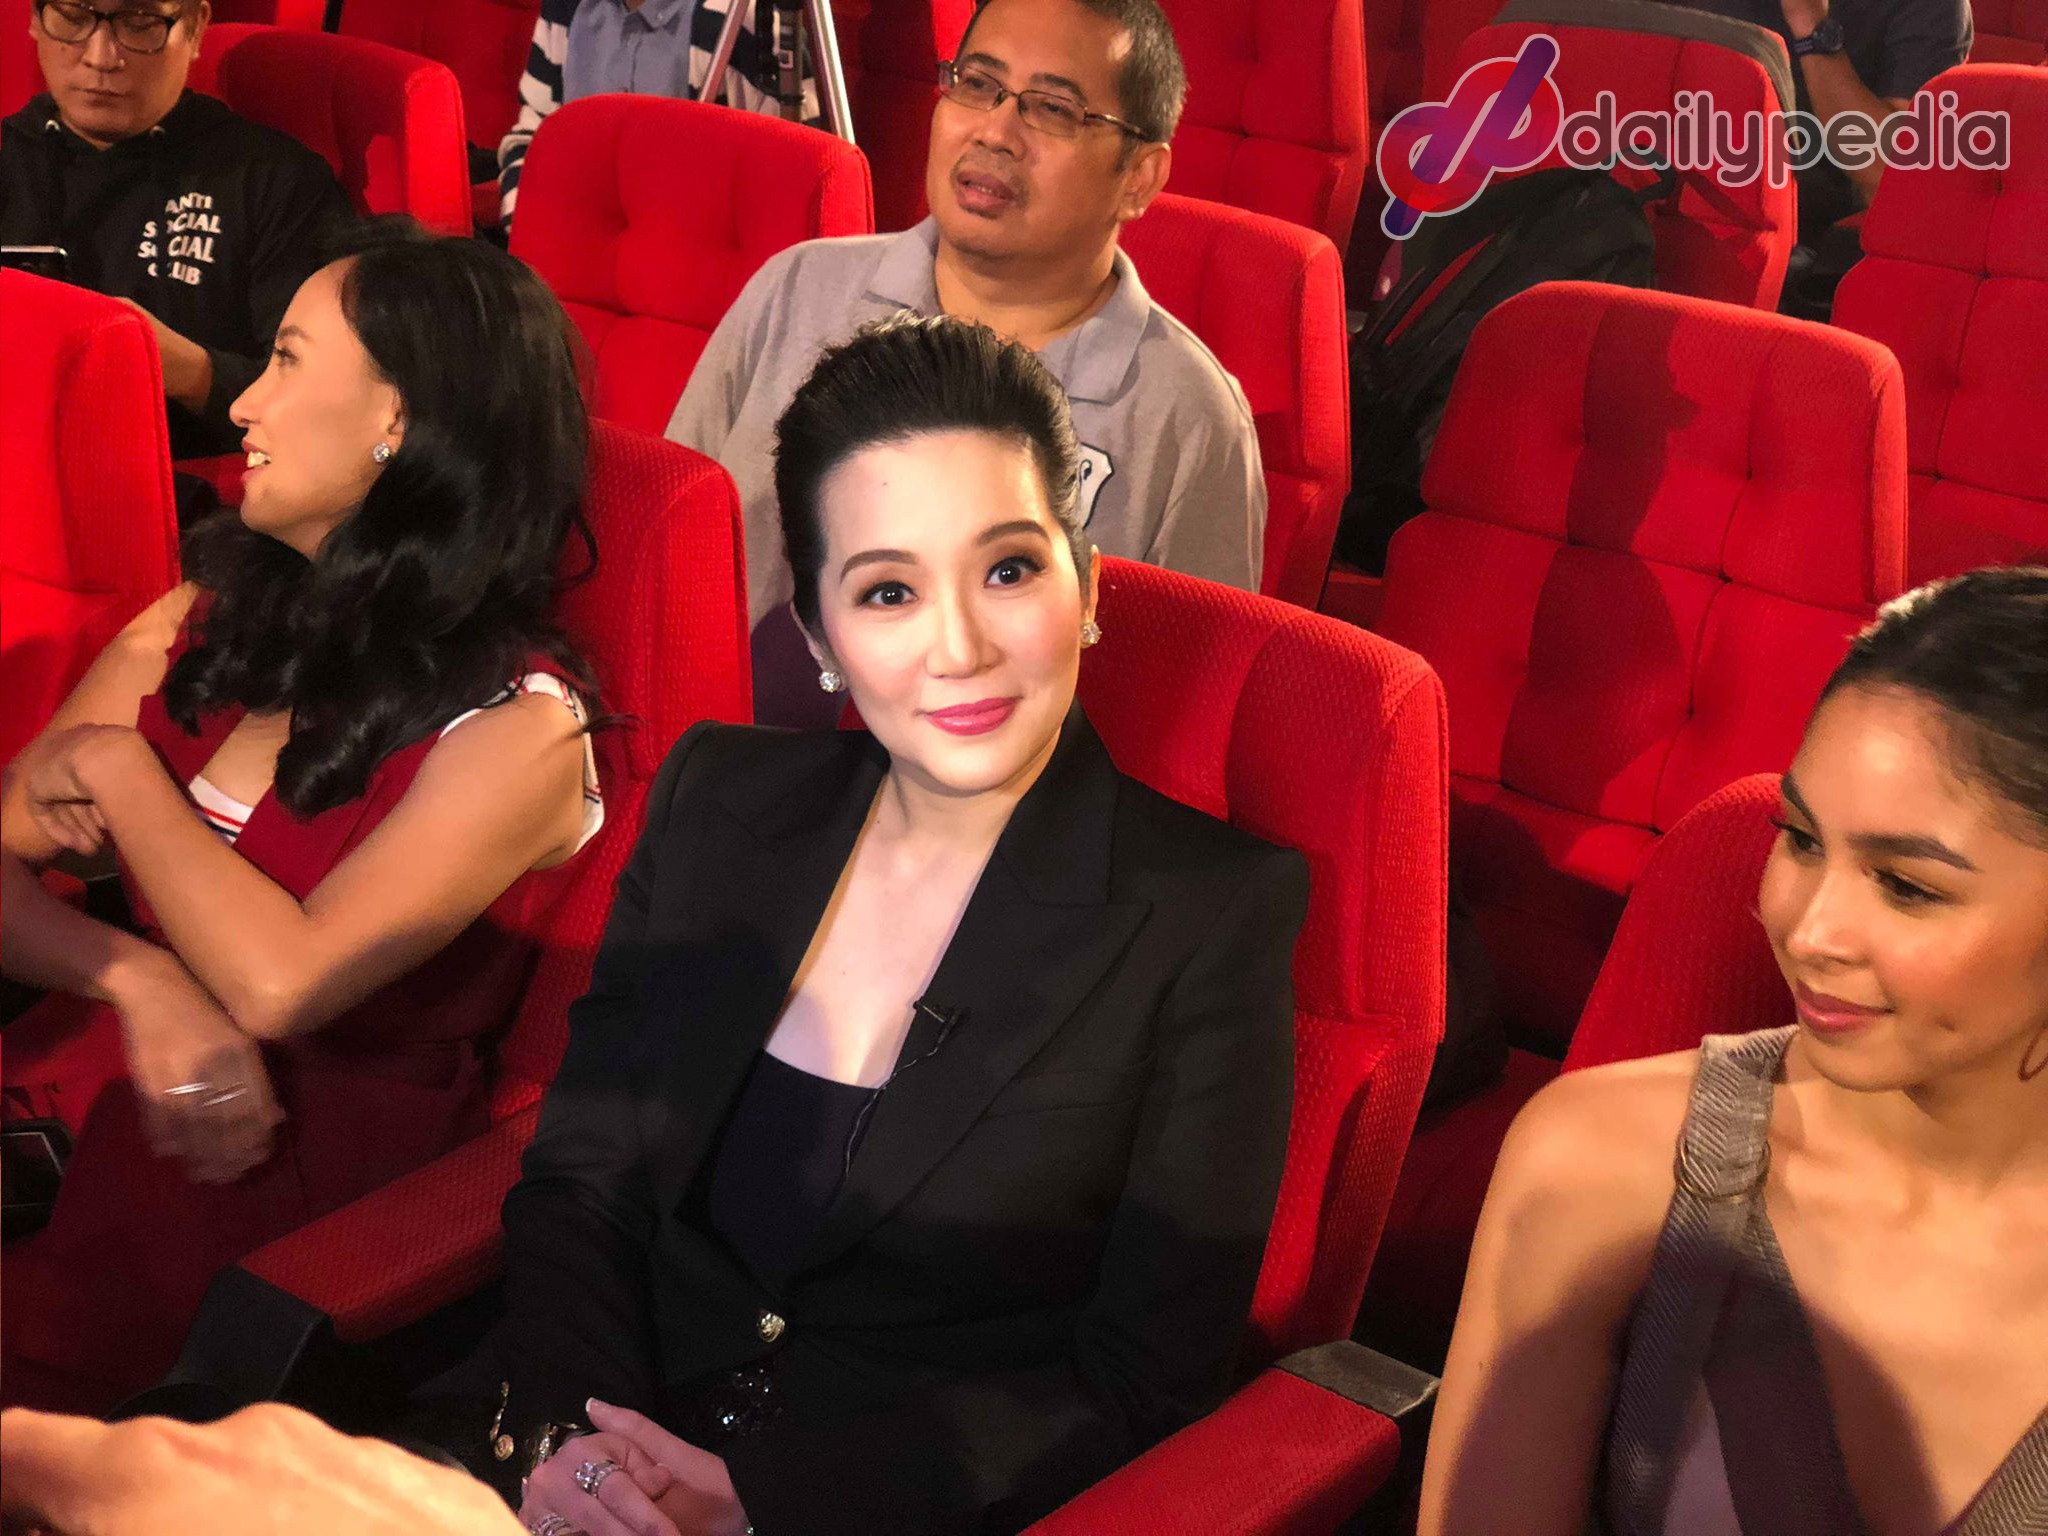 Kris Aquino Michael Leyva Archives | DailyPedia